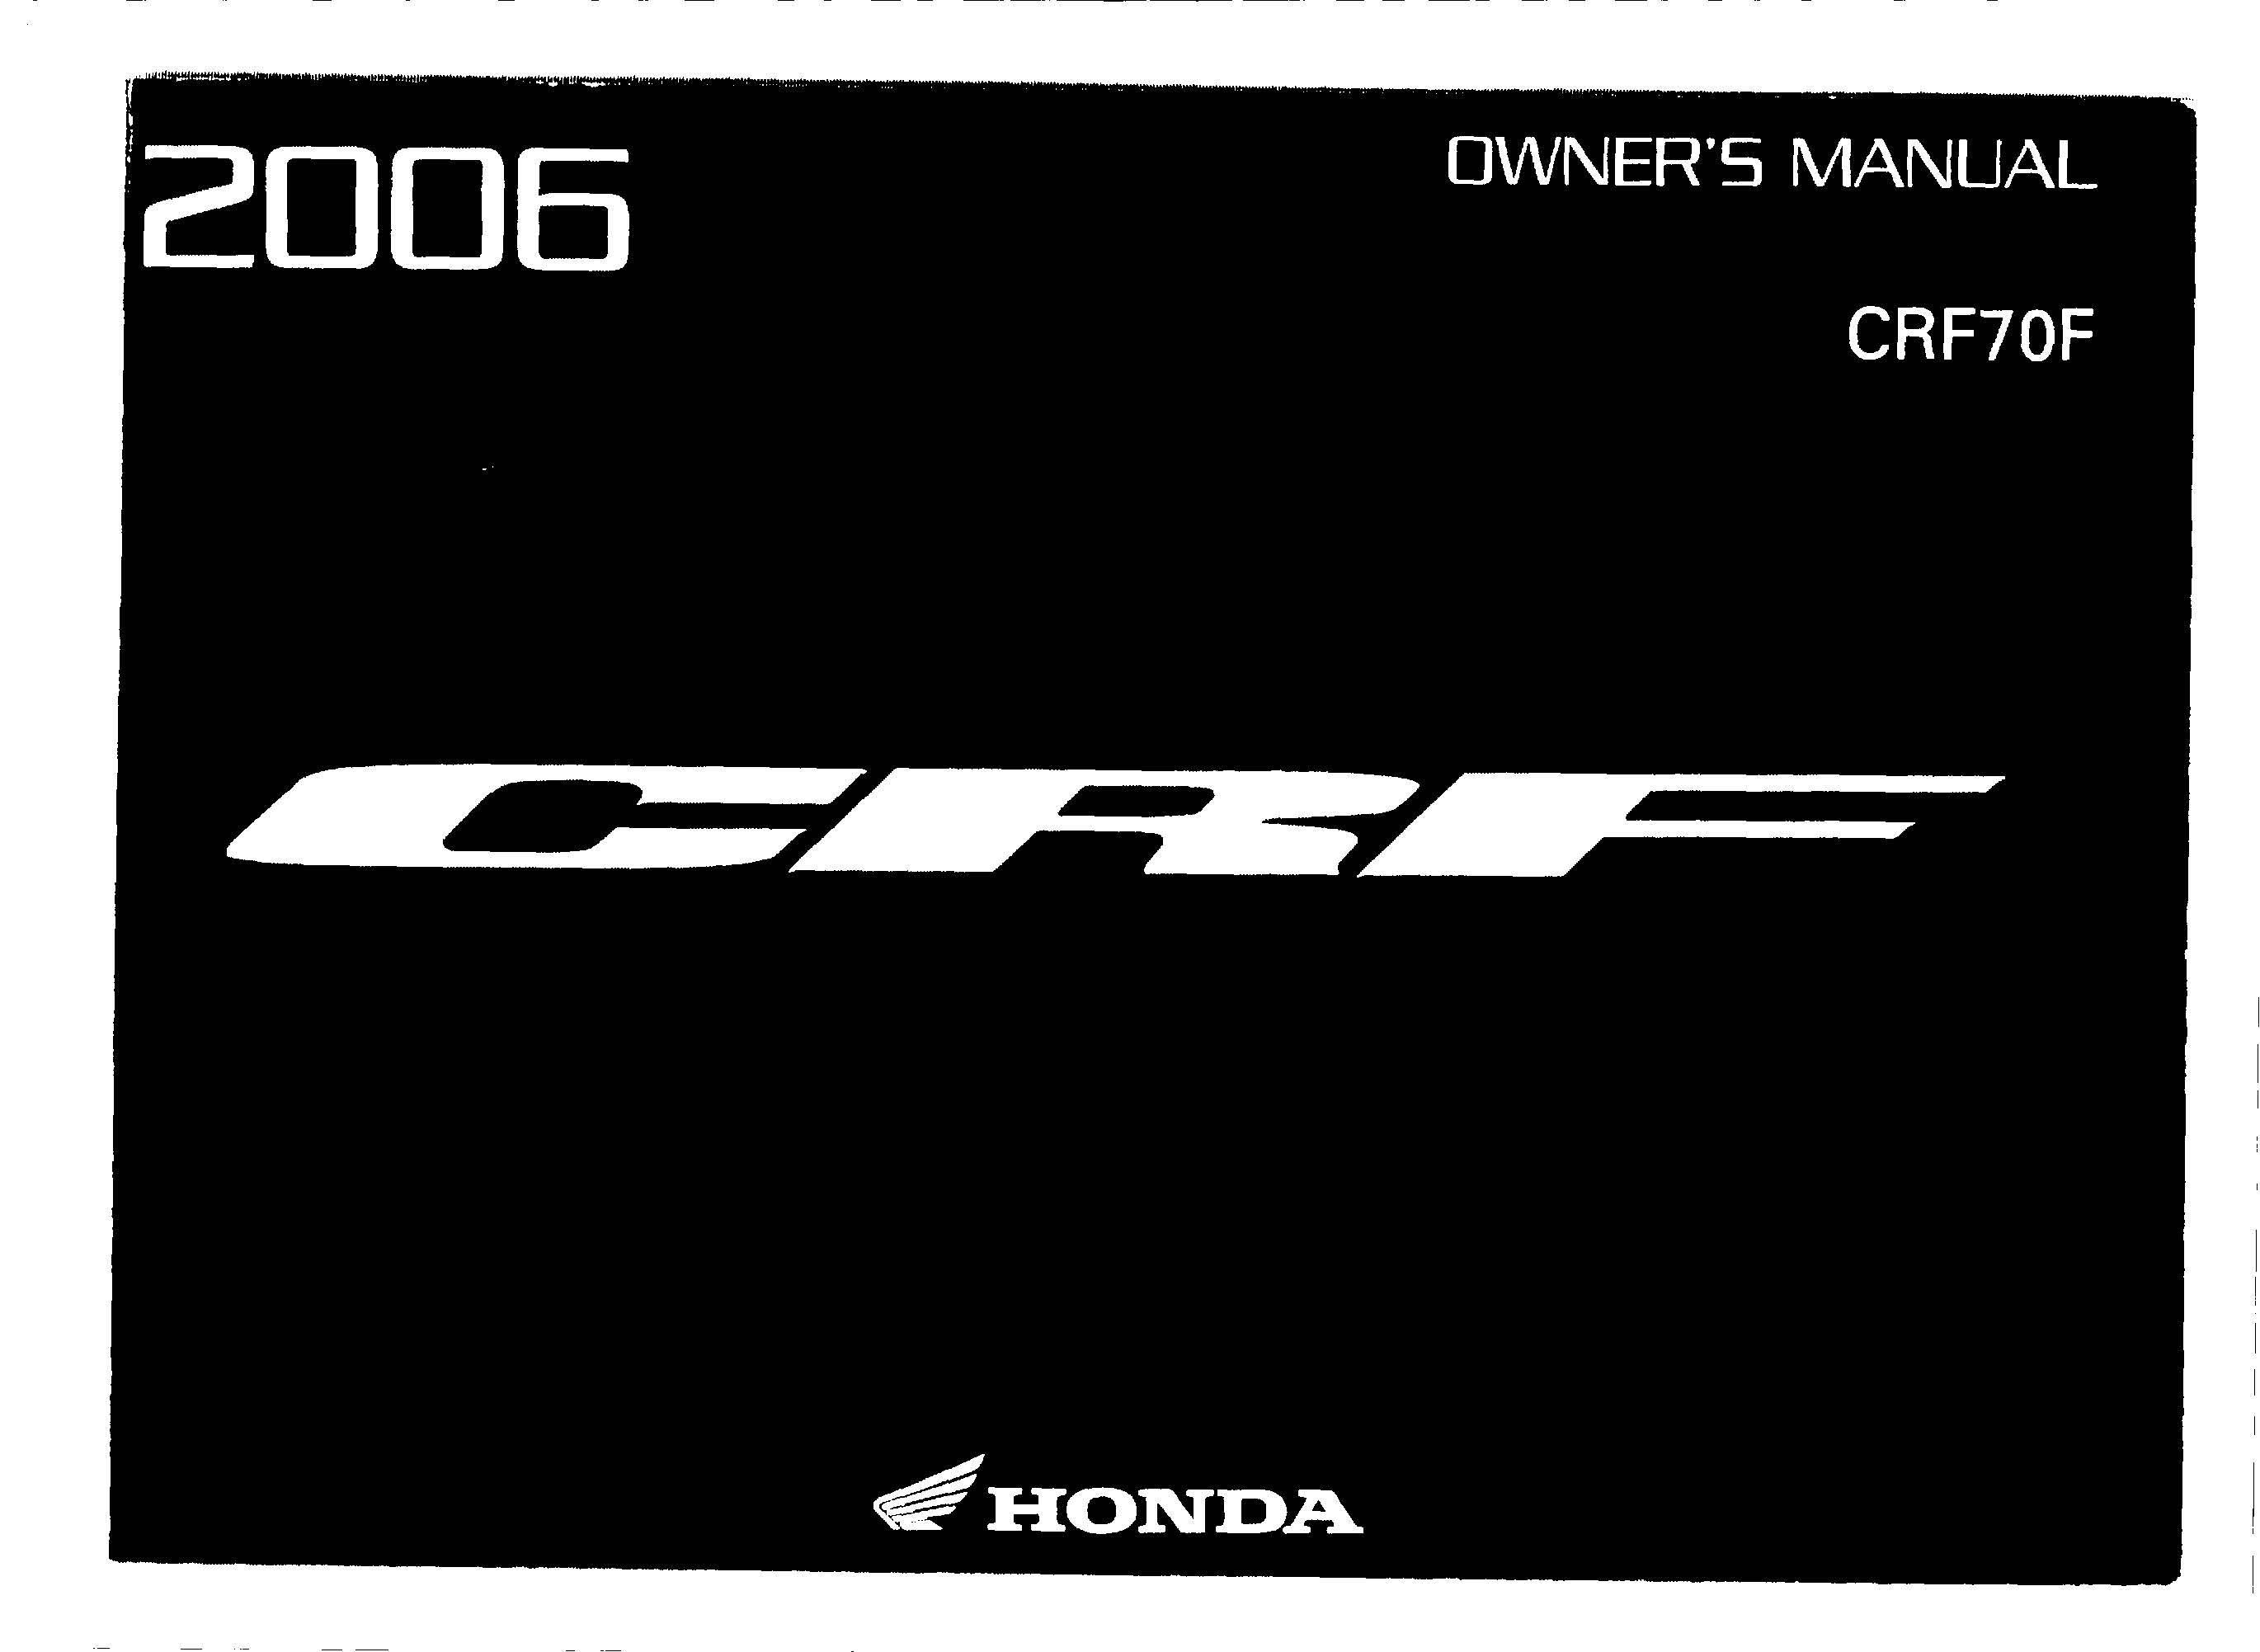 Owner's manual for Honda CRF70F (2006)